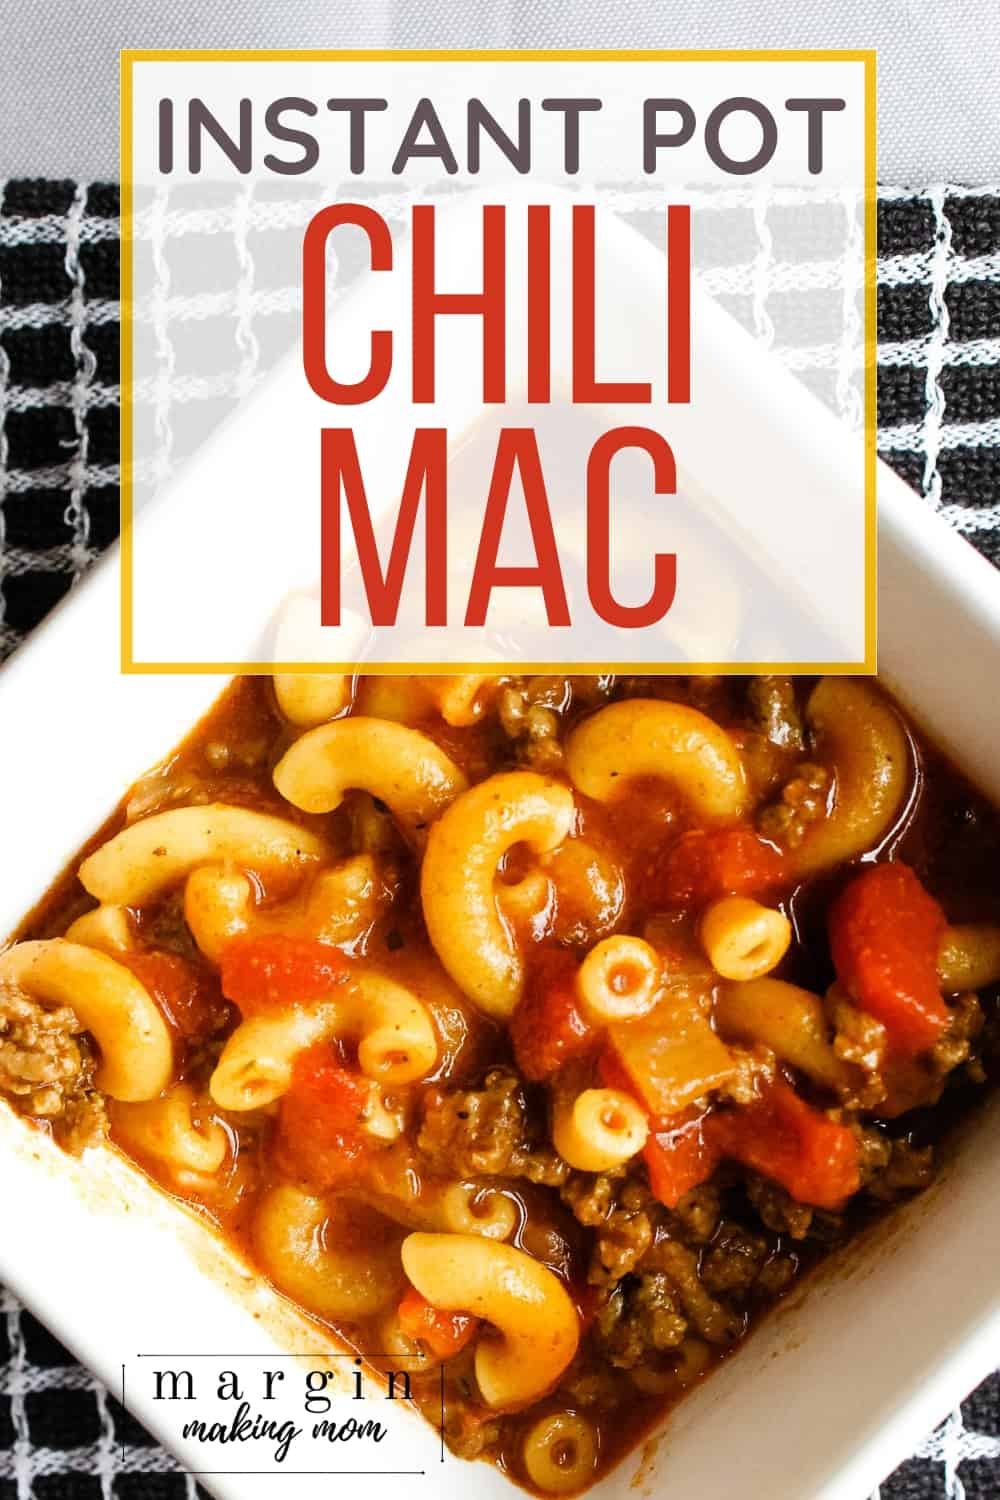 Instant Pot chili mac made with beef, noodles, and tomatoes in a white bowl